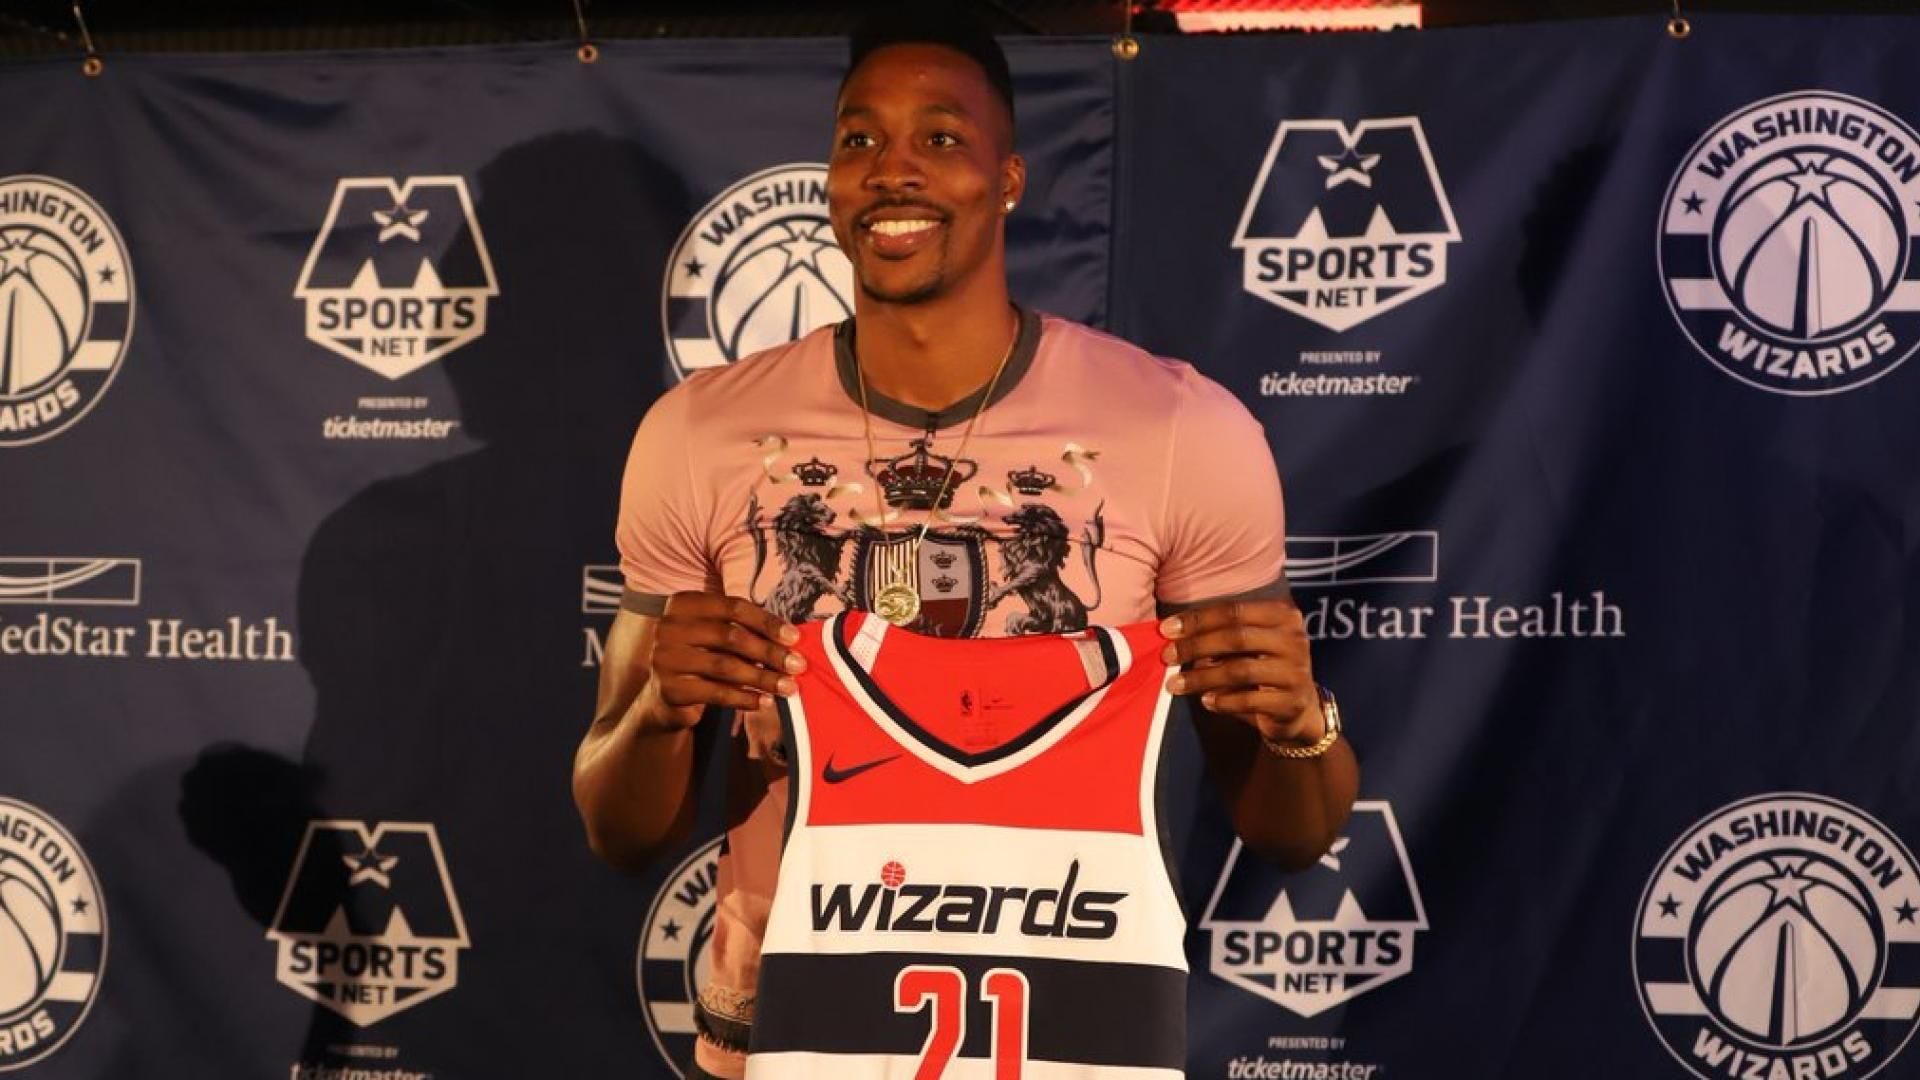 Nba Trade Rumors Dwight Howard Wants To Go With The Lakers Or Clippers As He Prefers La City Nba Trade Rumors Dwight Howard Lakers